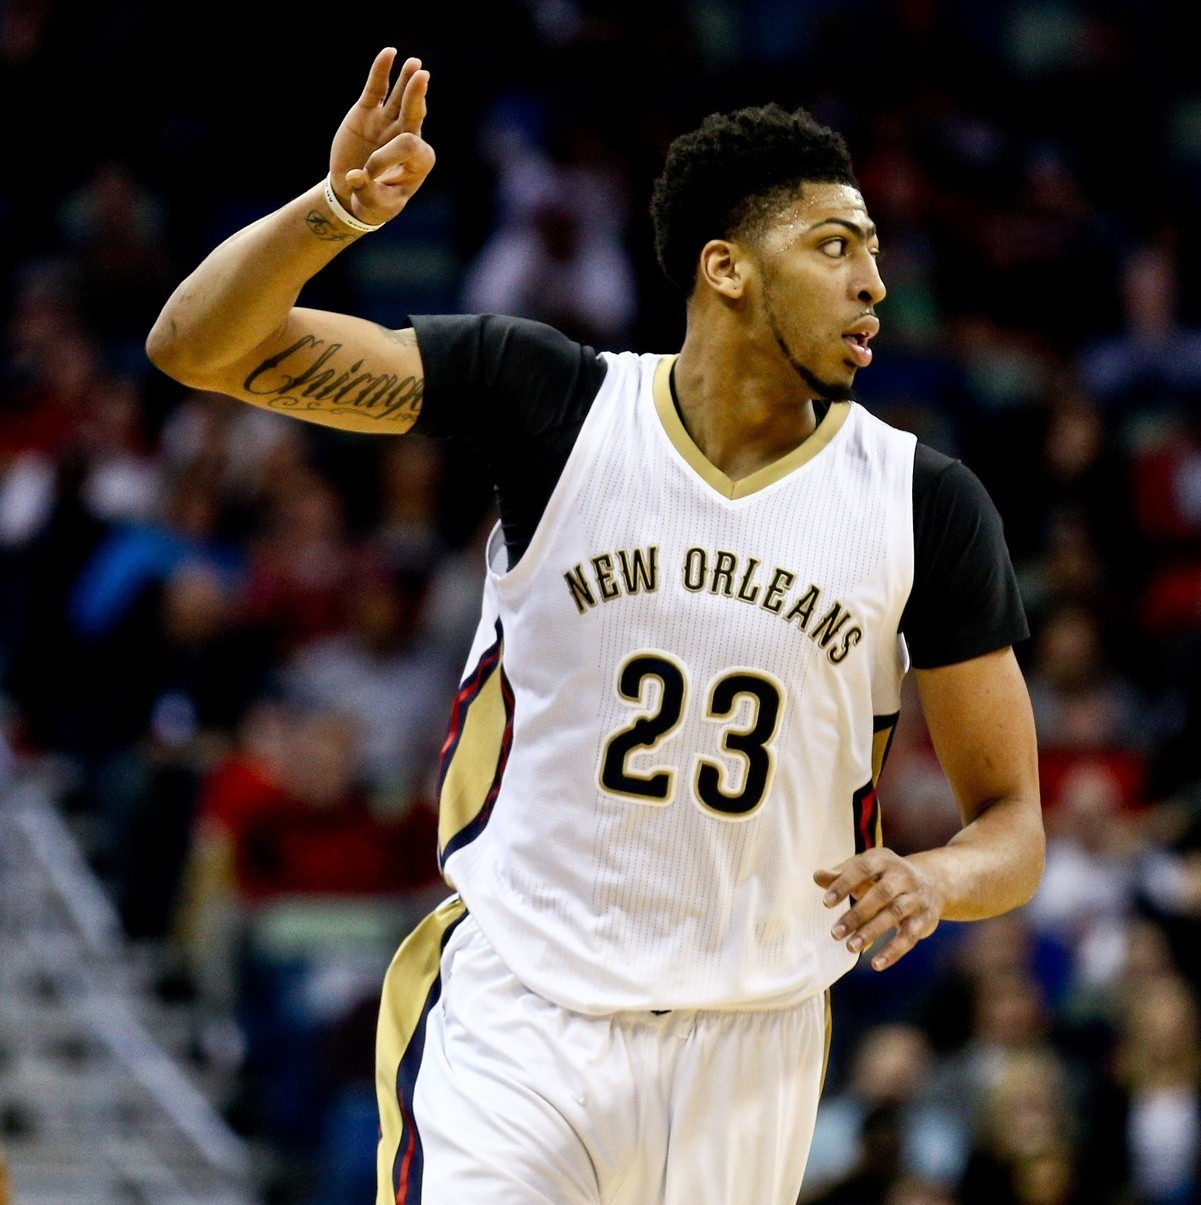 The-new-orleans-pelicans-are-better-but-are-they-any-good-1470153995.jpg?crop=0